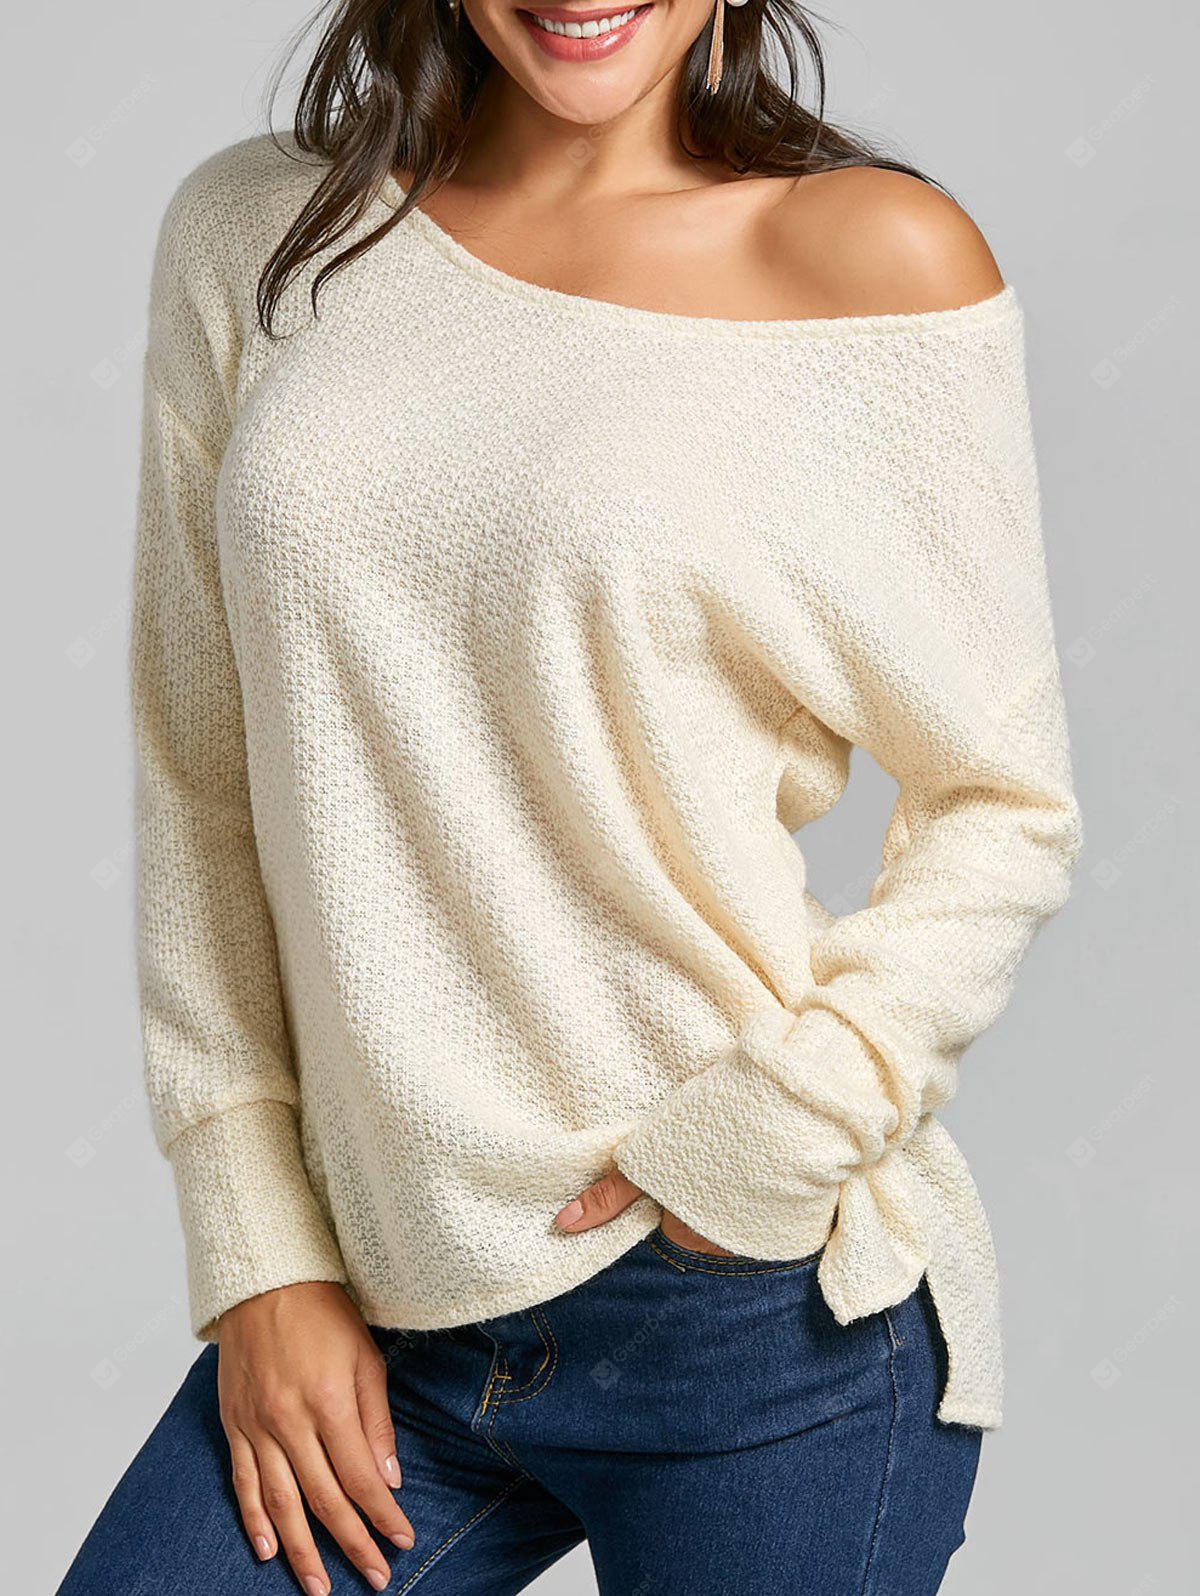 Skeuch Neck Slouchy Tunika Pullover